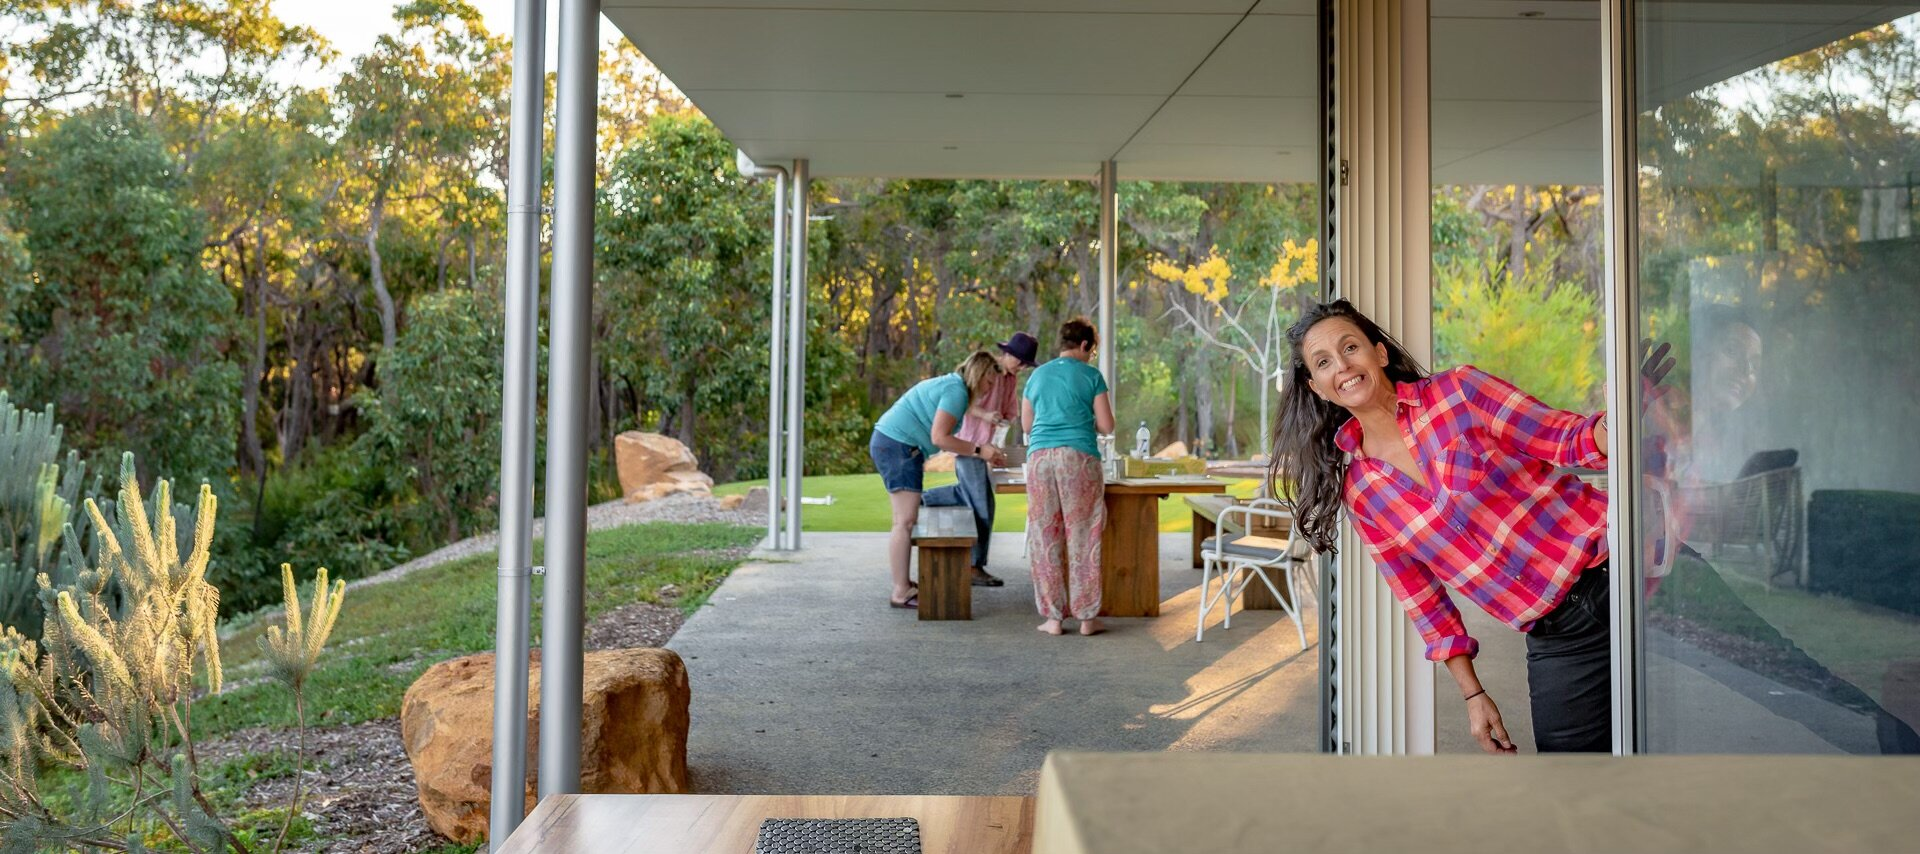 Our tenth retreat in Margaret River a the stunning J's Retreat